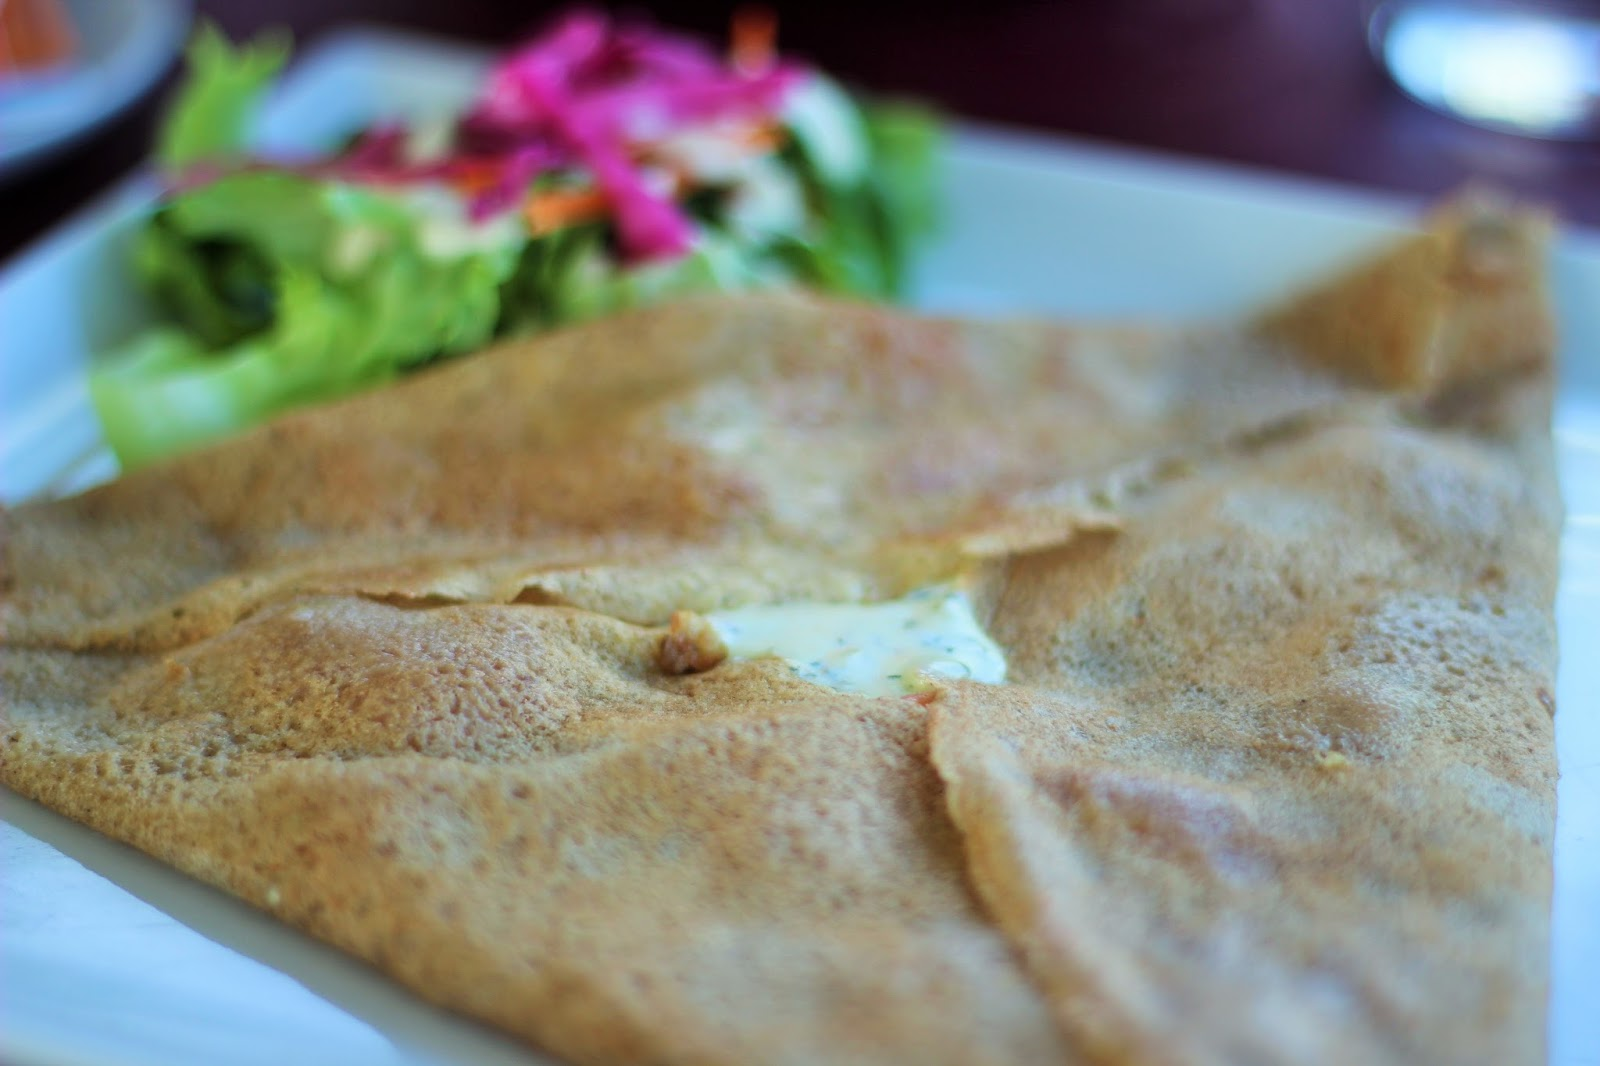 Salmon and Dill Crêpe at the Paradise View Crêperie in Sint Maarten